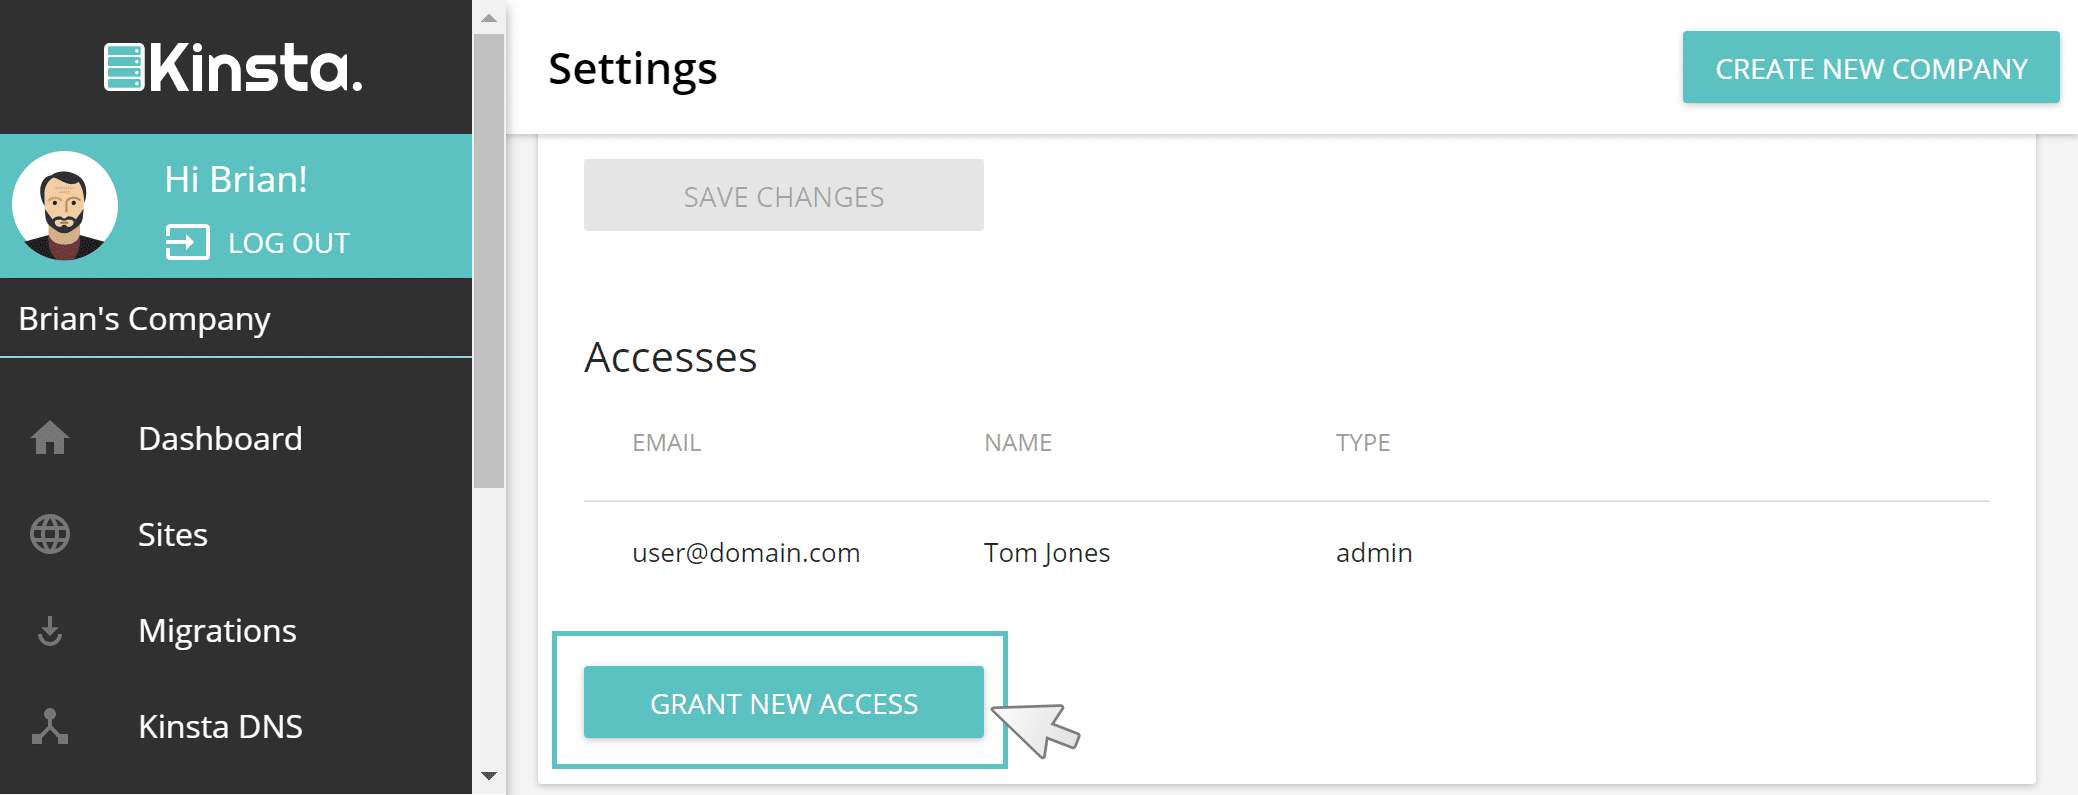 grant new access wordpress